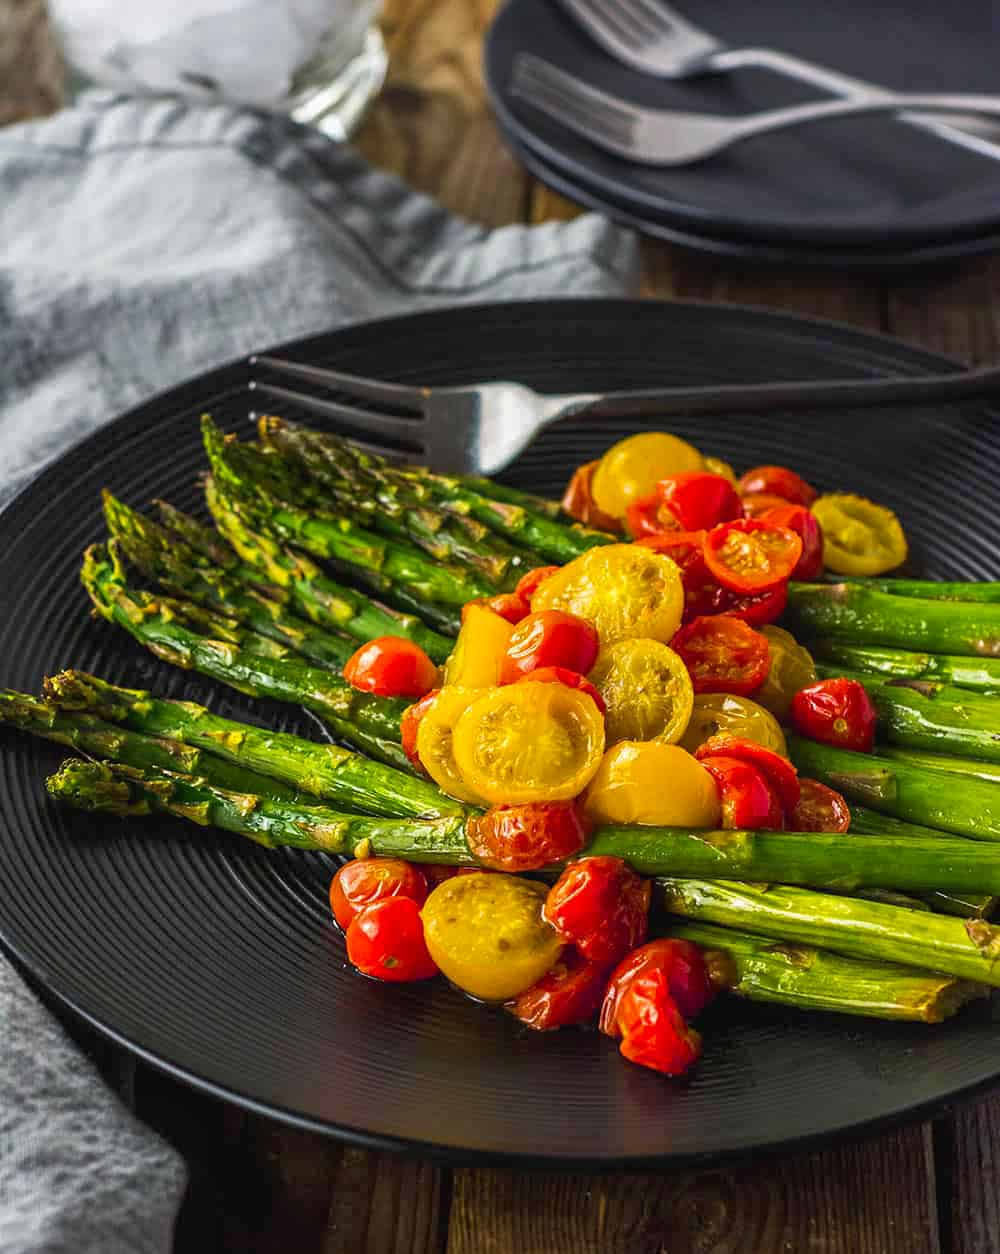 Oven Roasted Asparagus and Tomatoes